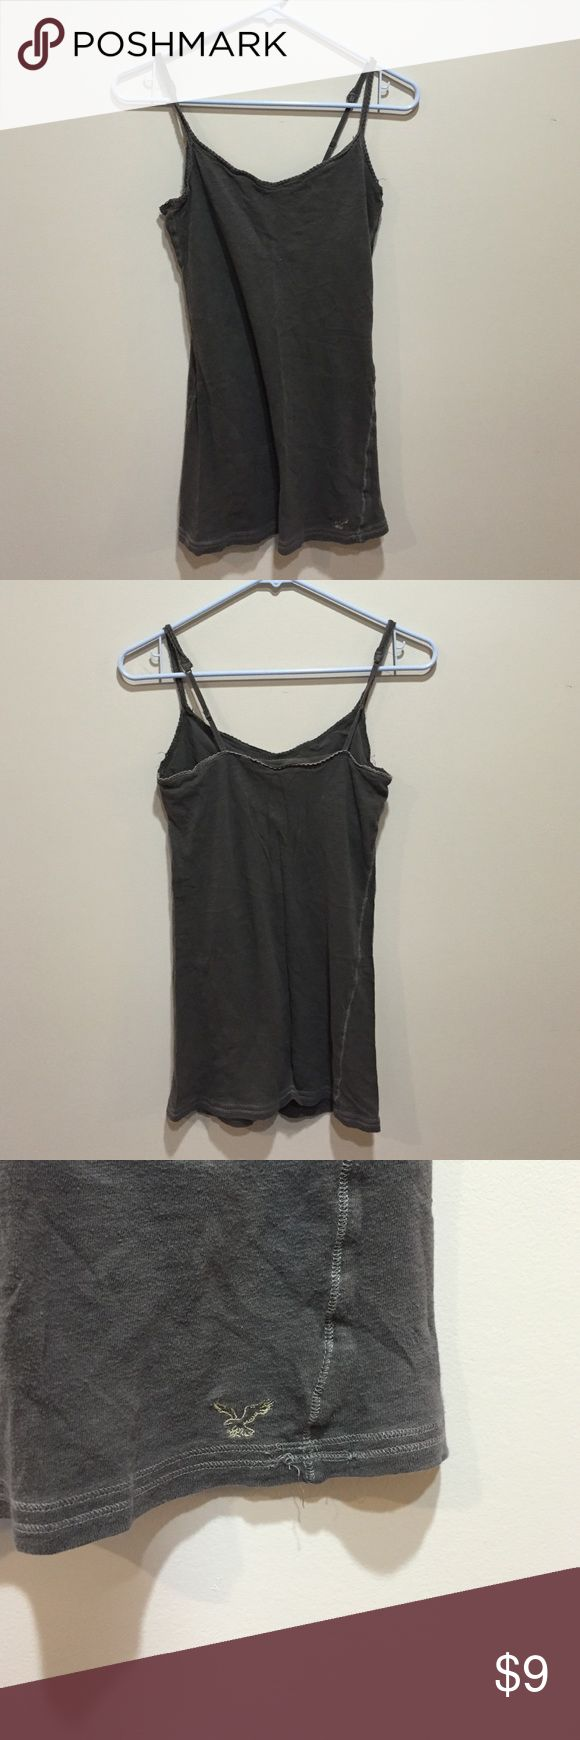 AE CAMI American eagle light brown CAMI. Bra shelf. Worn a few times but good condition American Eagle Outfitters Tops Camisoles